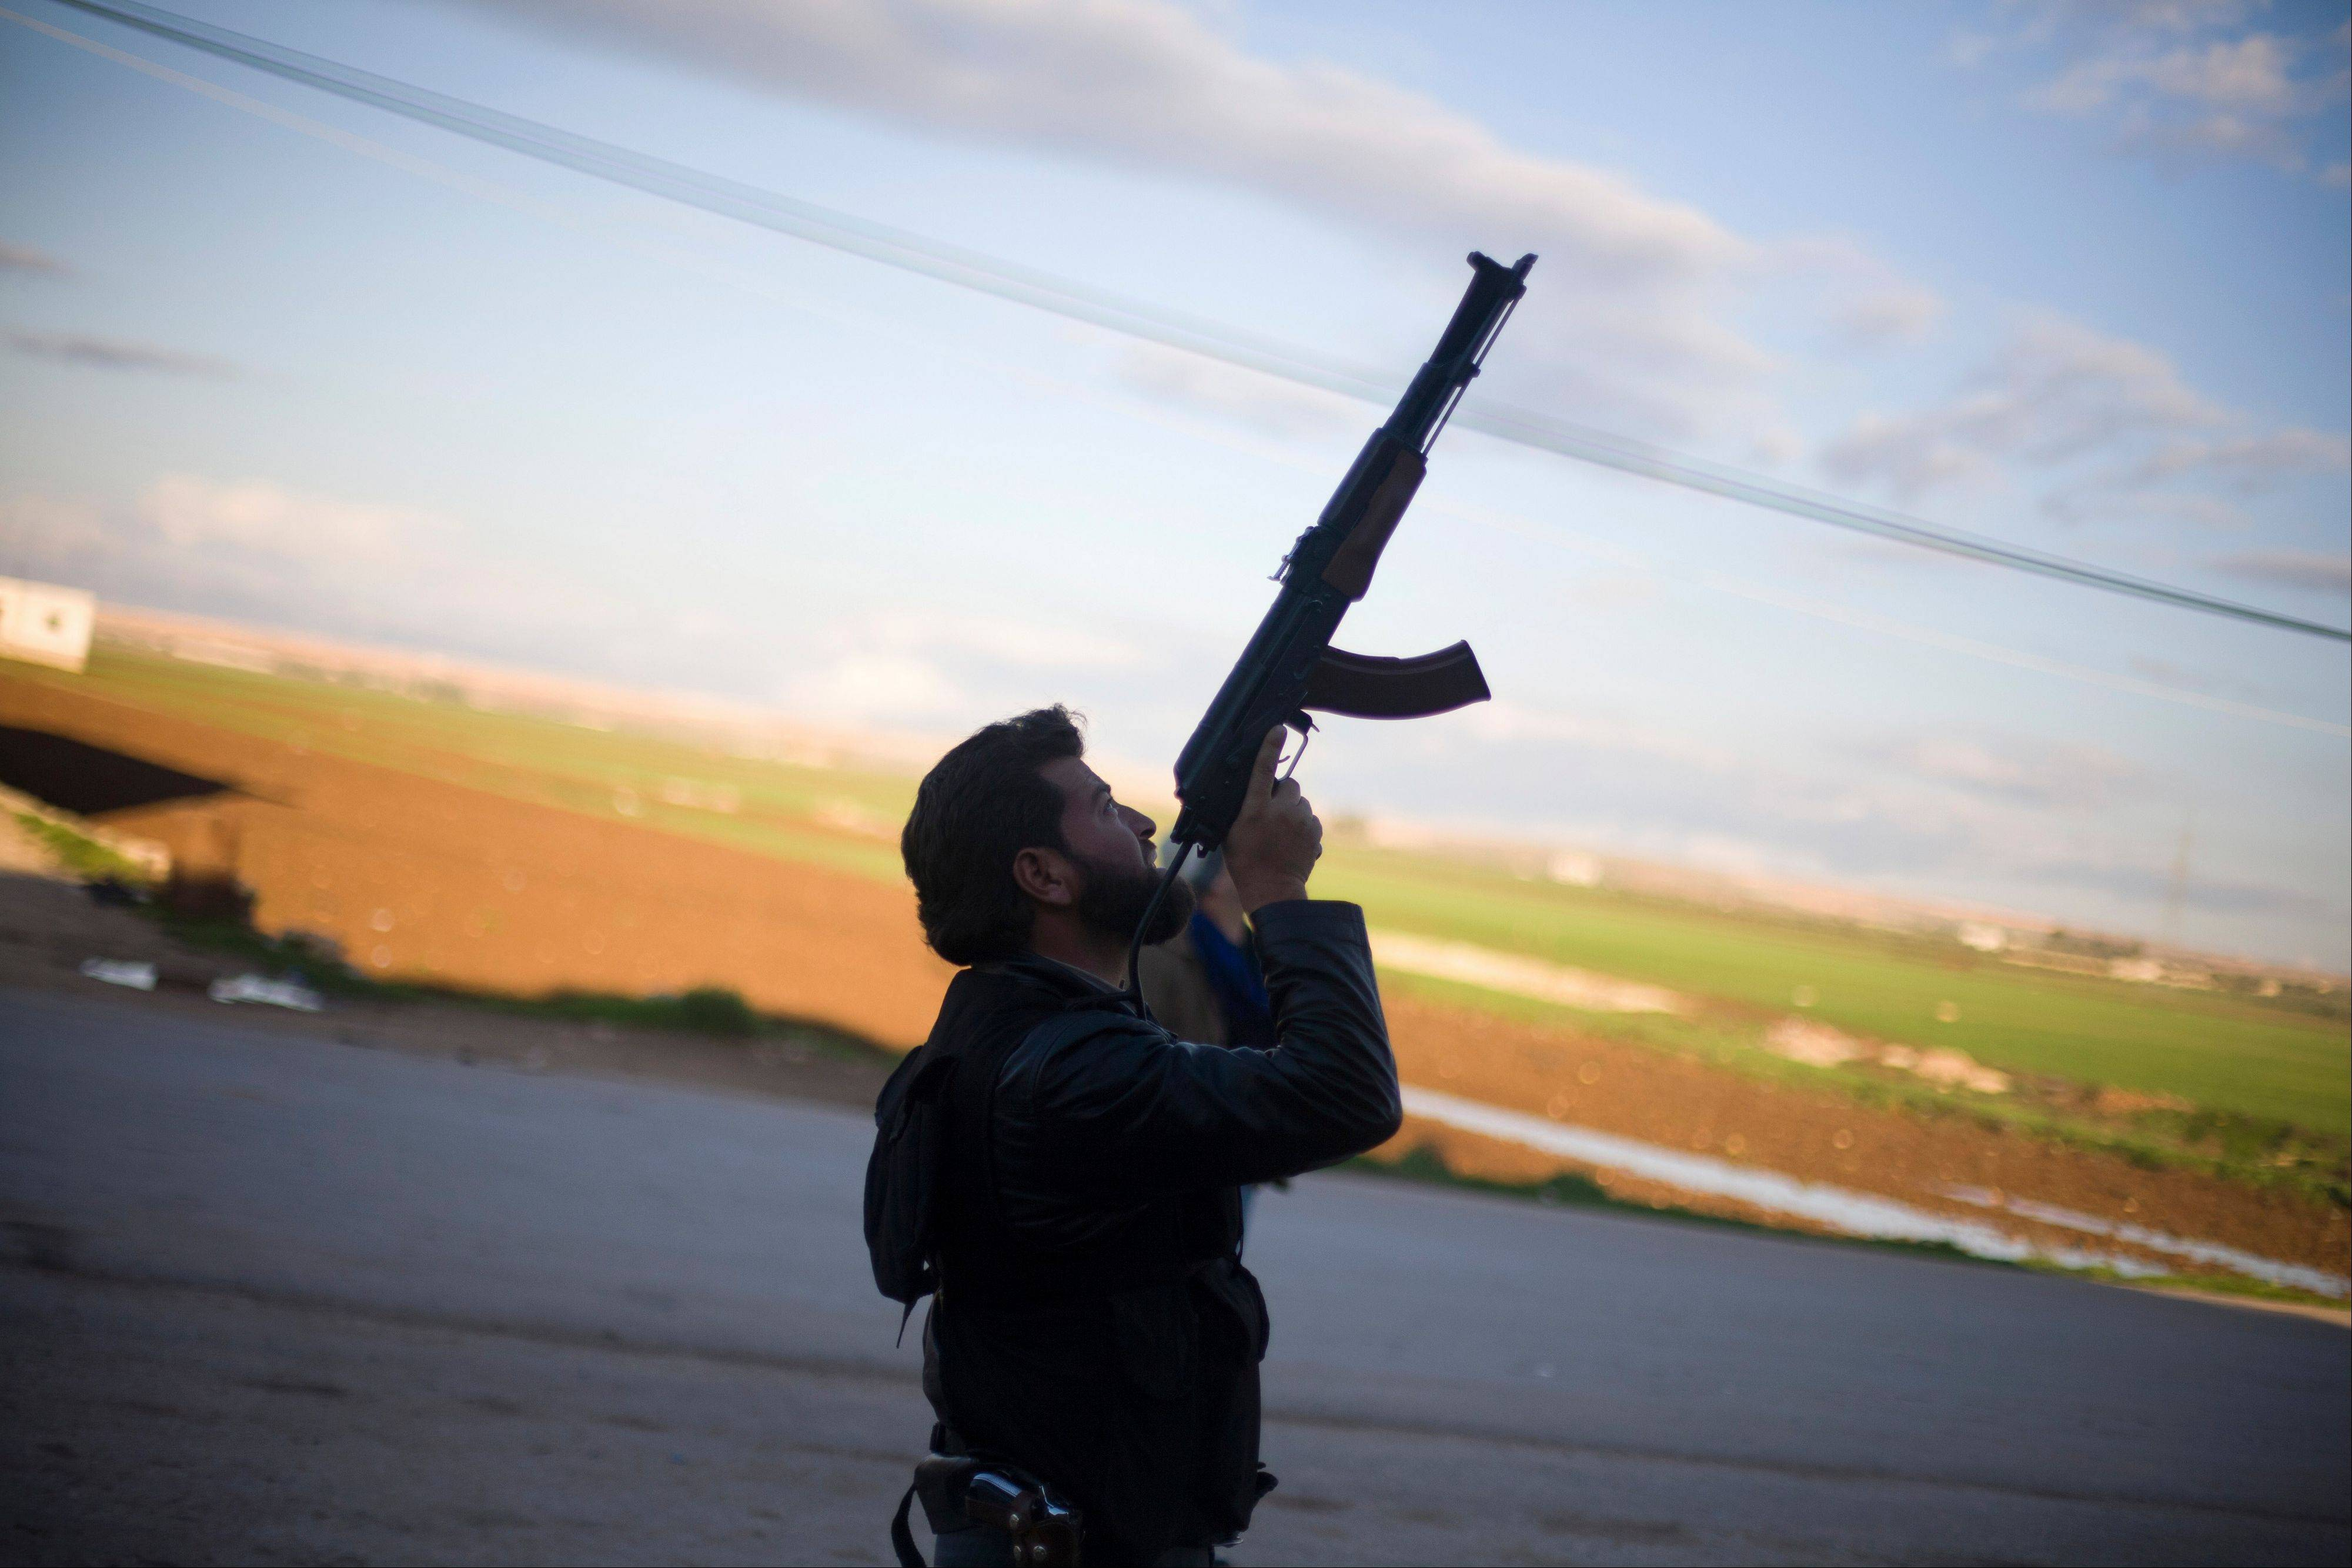 A Free Syrian Army fighter points his weapon Tuesday as he watches a Syrian Army jet, not pictured, in Fafeen village, north of Aleppo province, Syria.